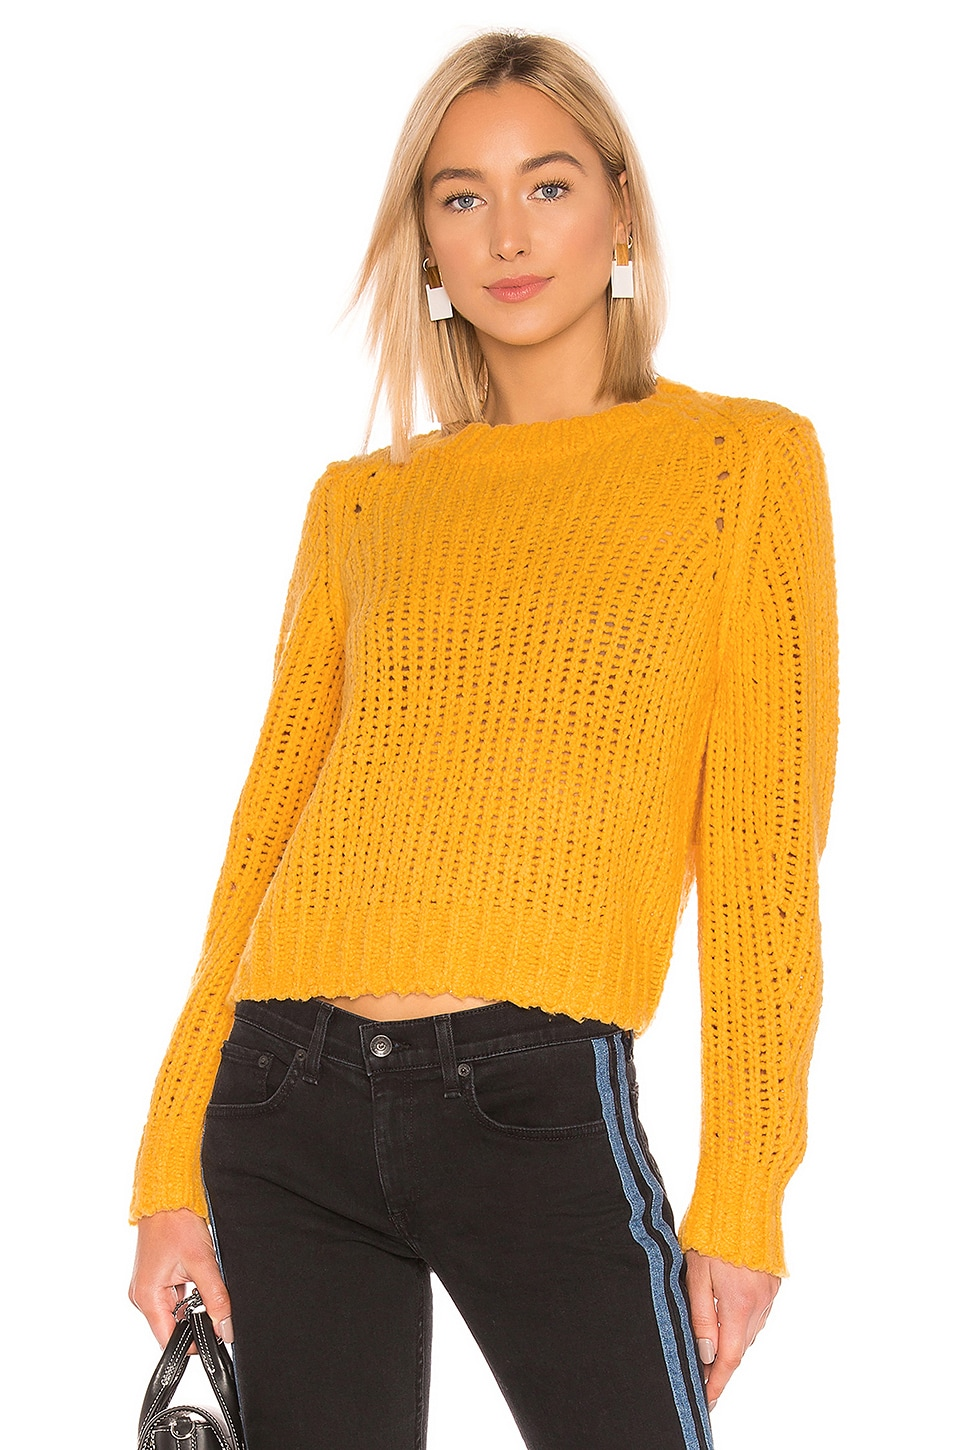 Rag & Bone Arizona Crew Neck Sweater in Gold